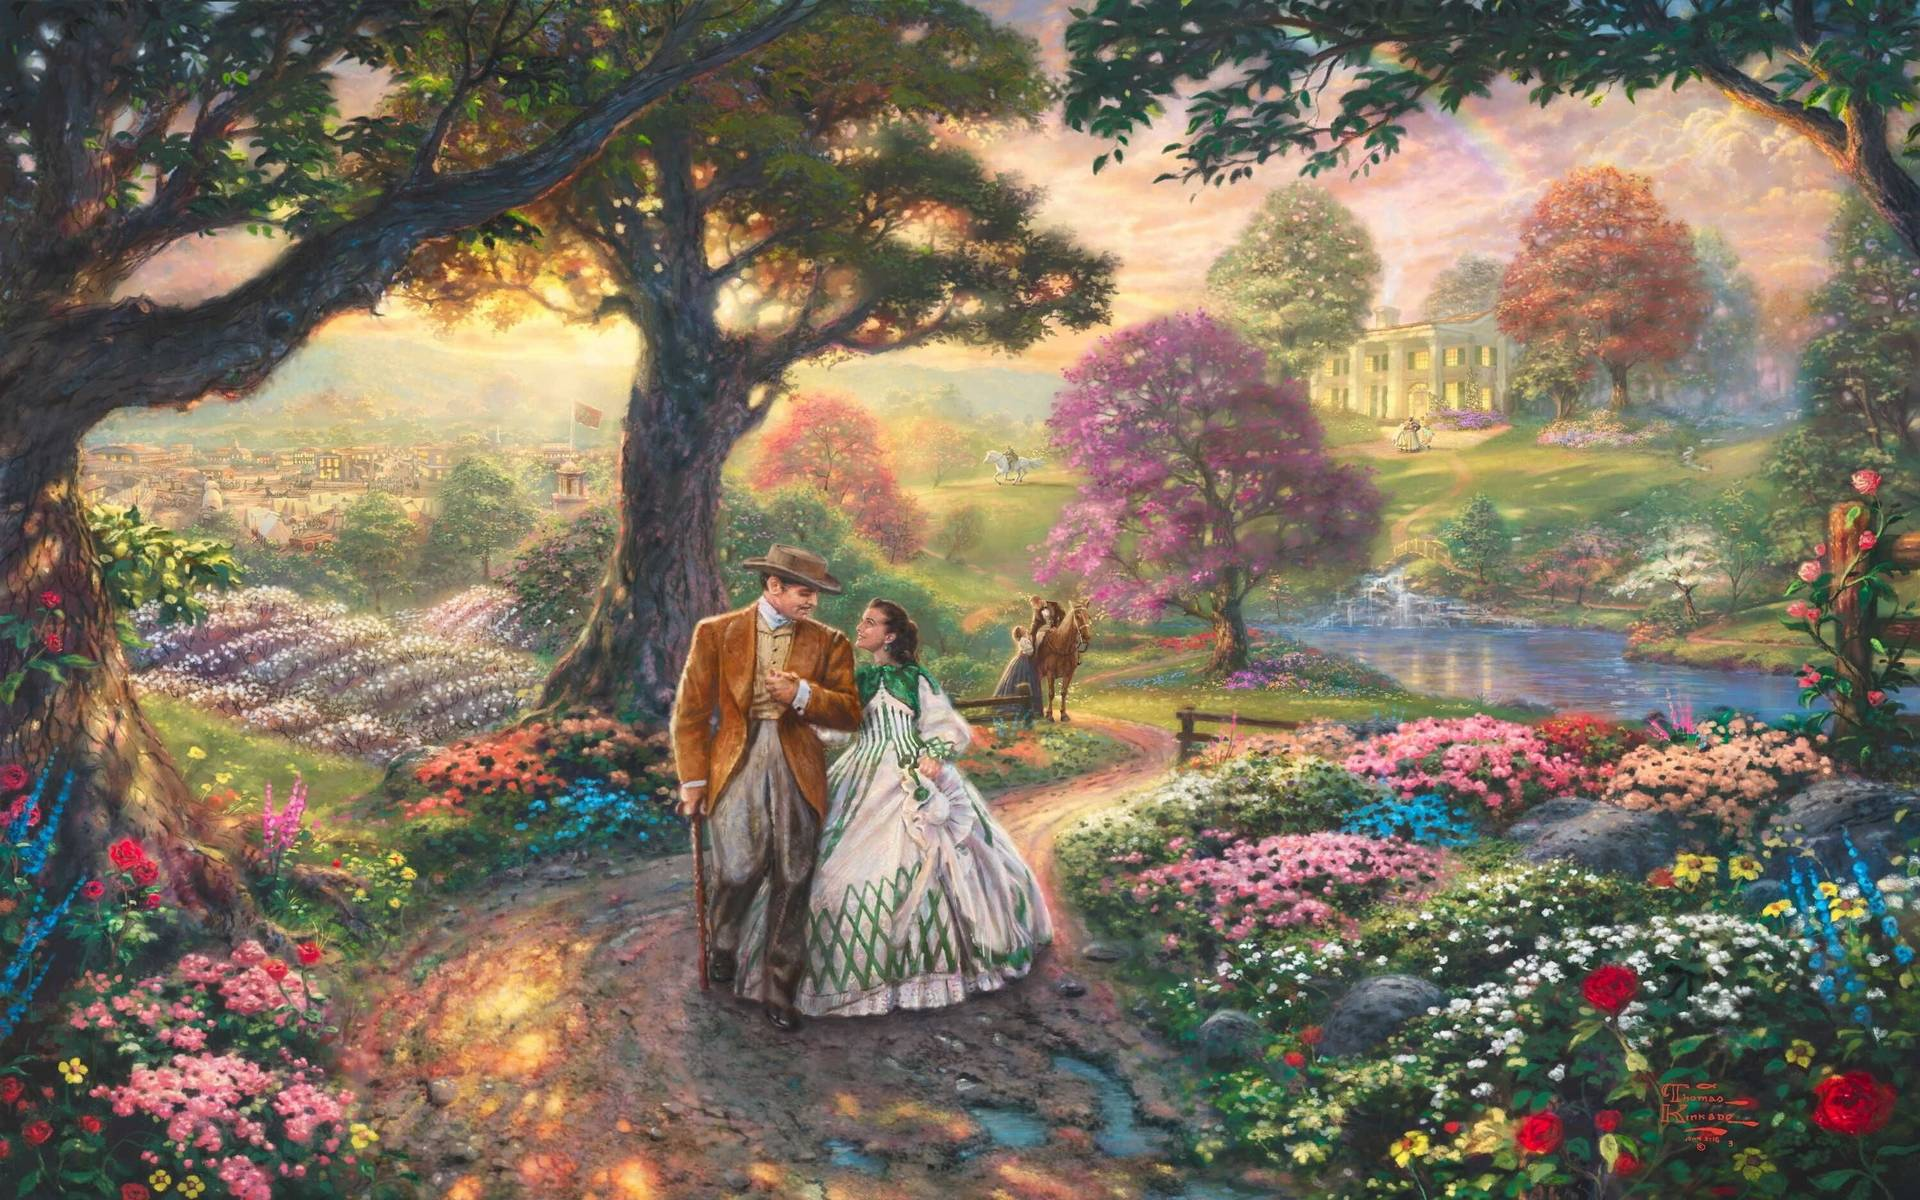 Thomas Kinkade Disney Images & Pictures - Becuo